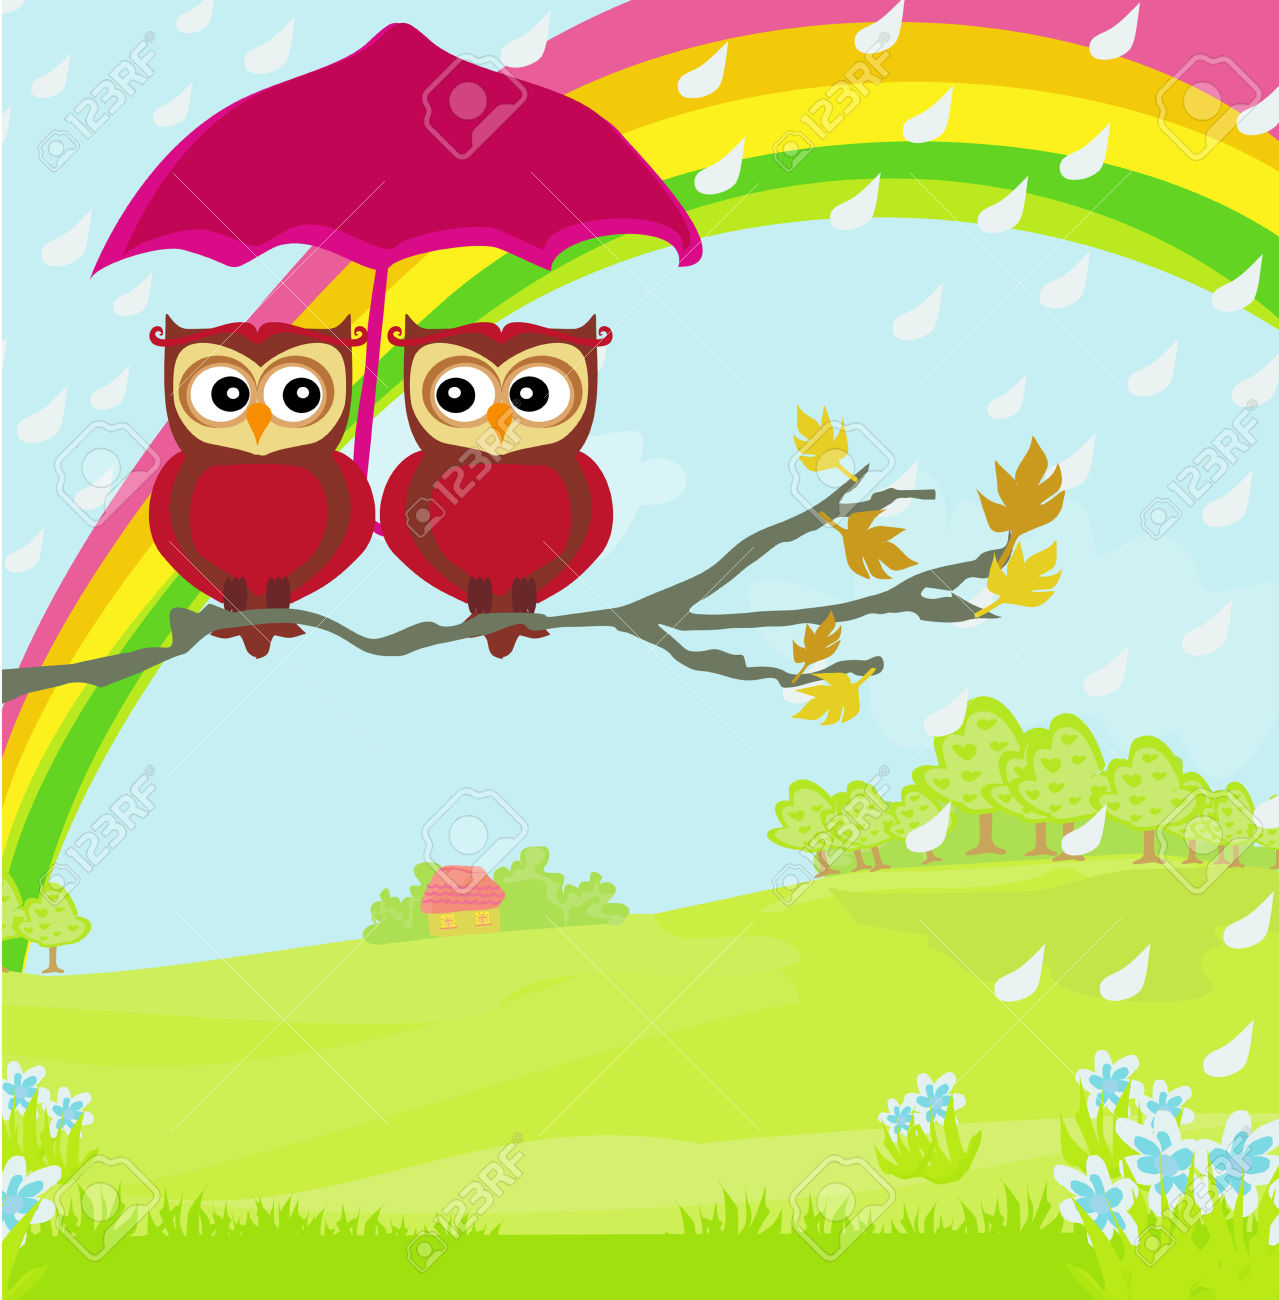 Animated Rainy Day Clipart.